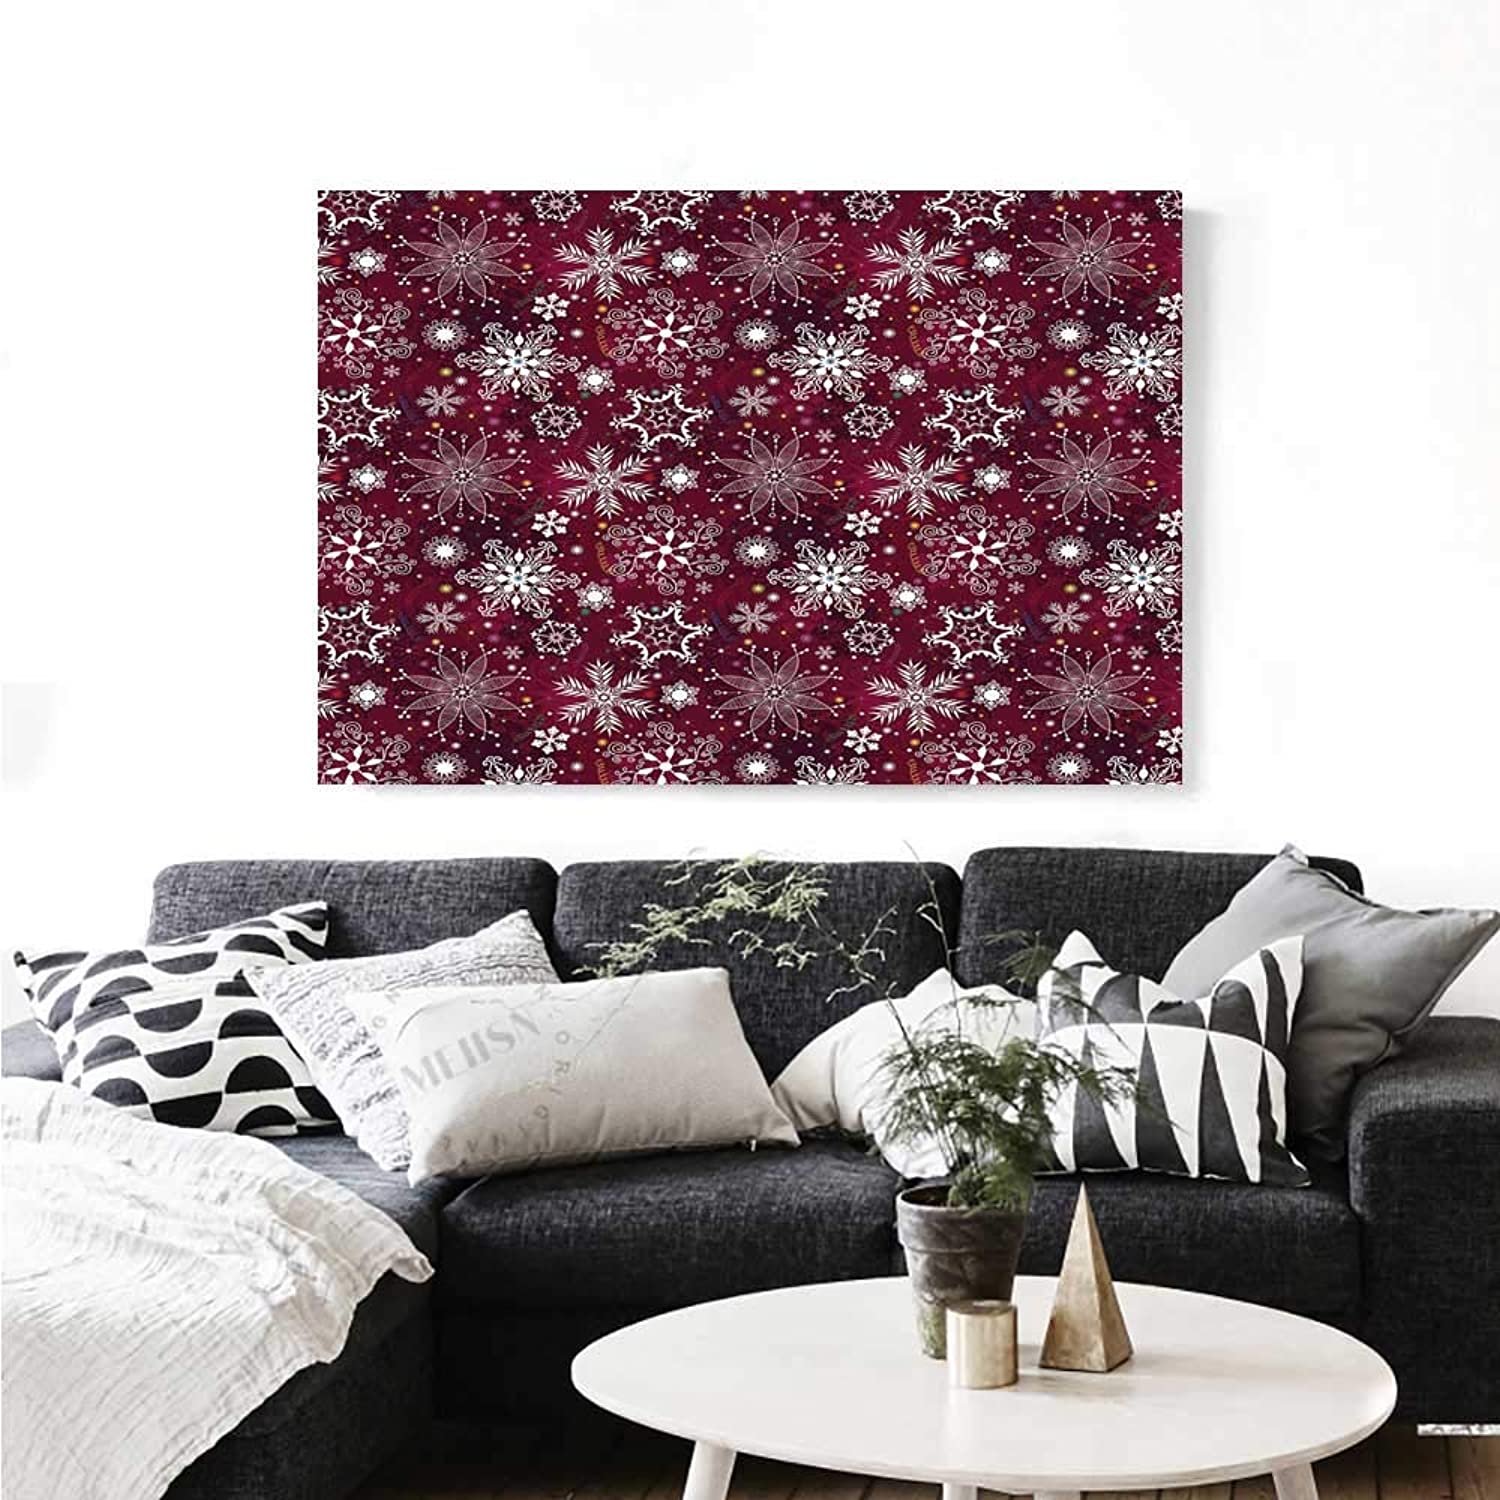 Warm Family Winter Canvas Wall Art for Bedroom Home Decorations Floral Flakes with colorful Swirls Dots and Stars Confetti Xmas Party Wall Stickers 36 x32  Maroon White Multicolor